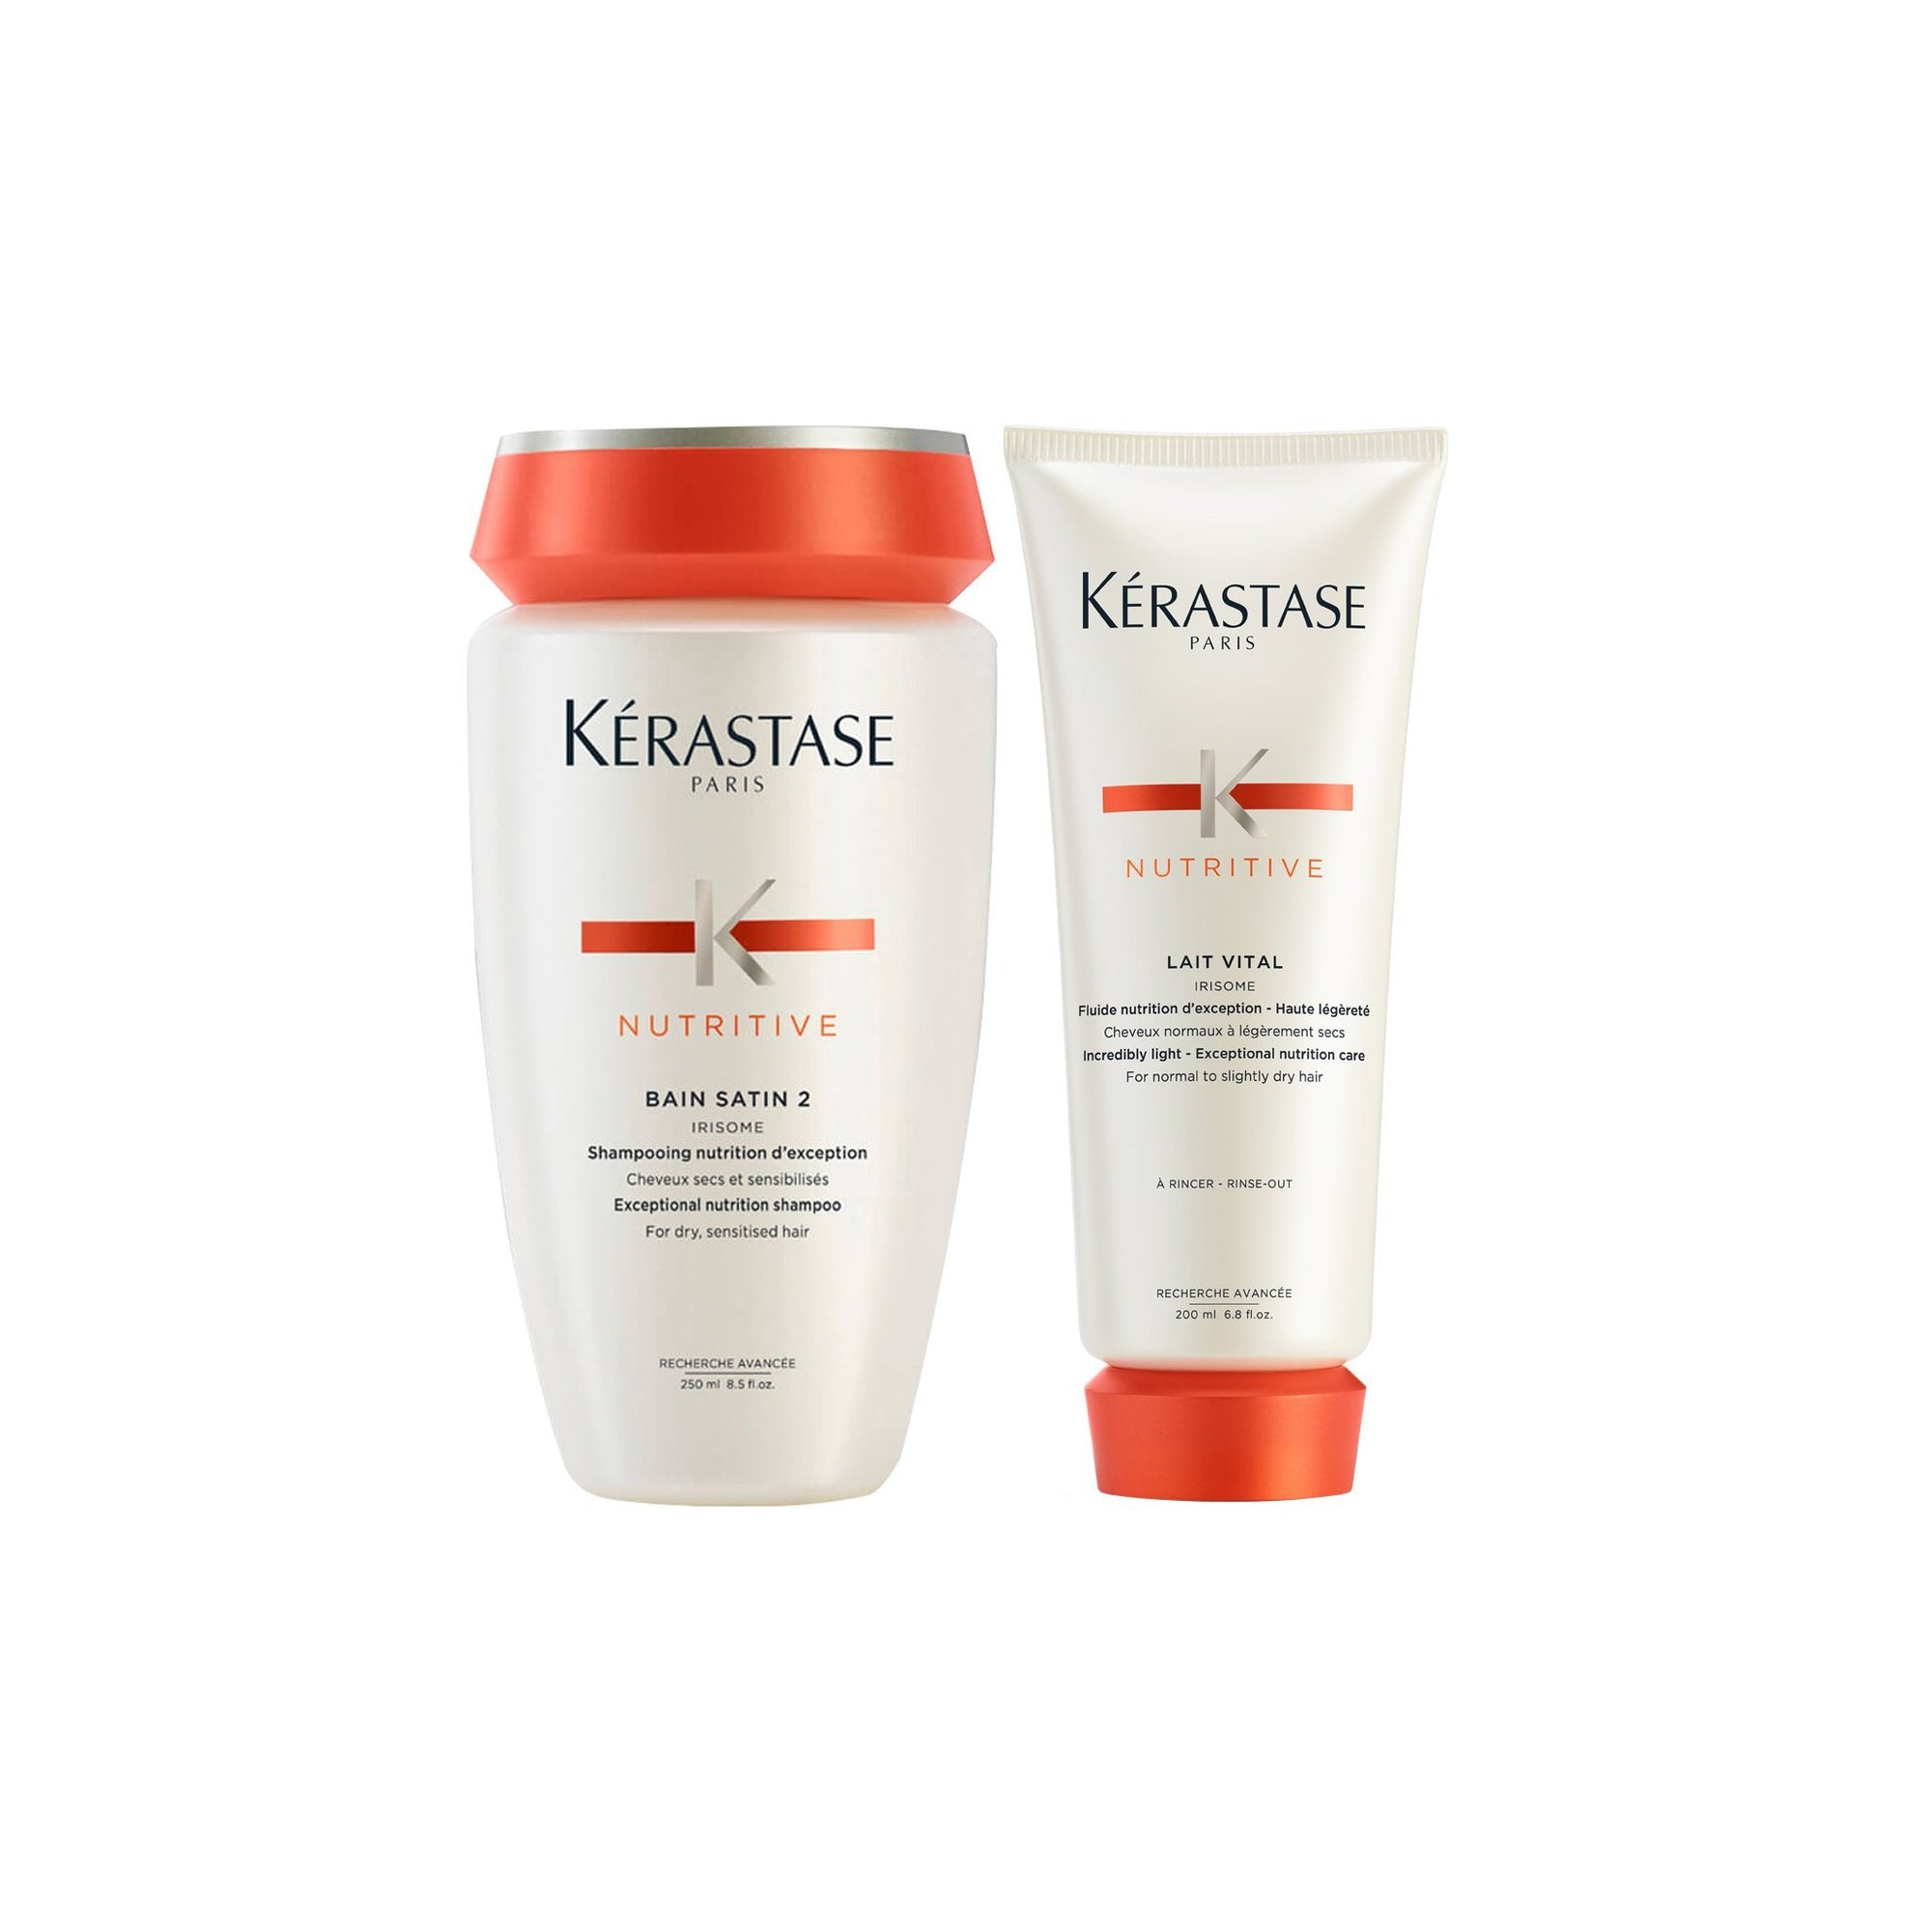 Kérastase Bain Satin 2 Bundle